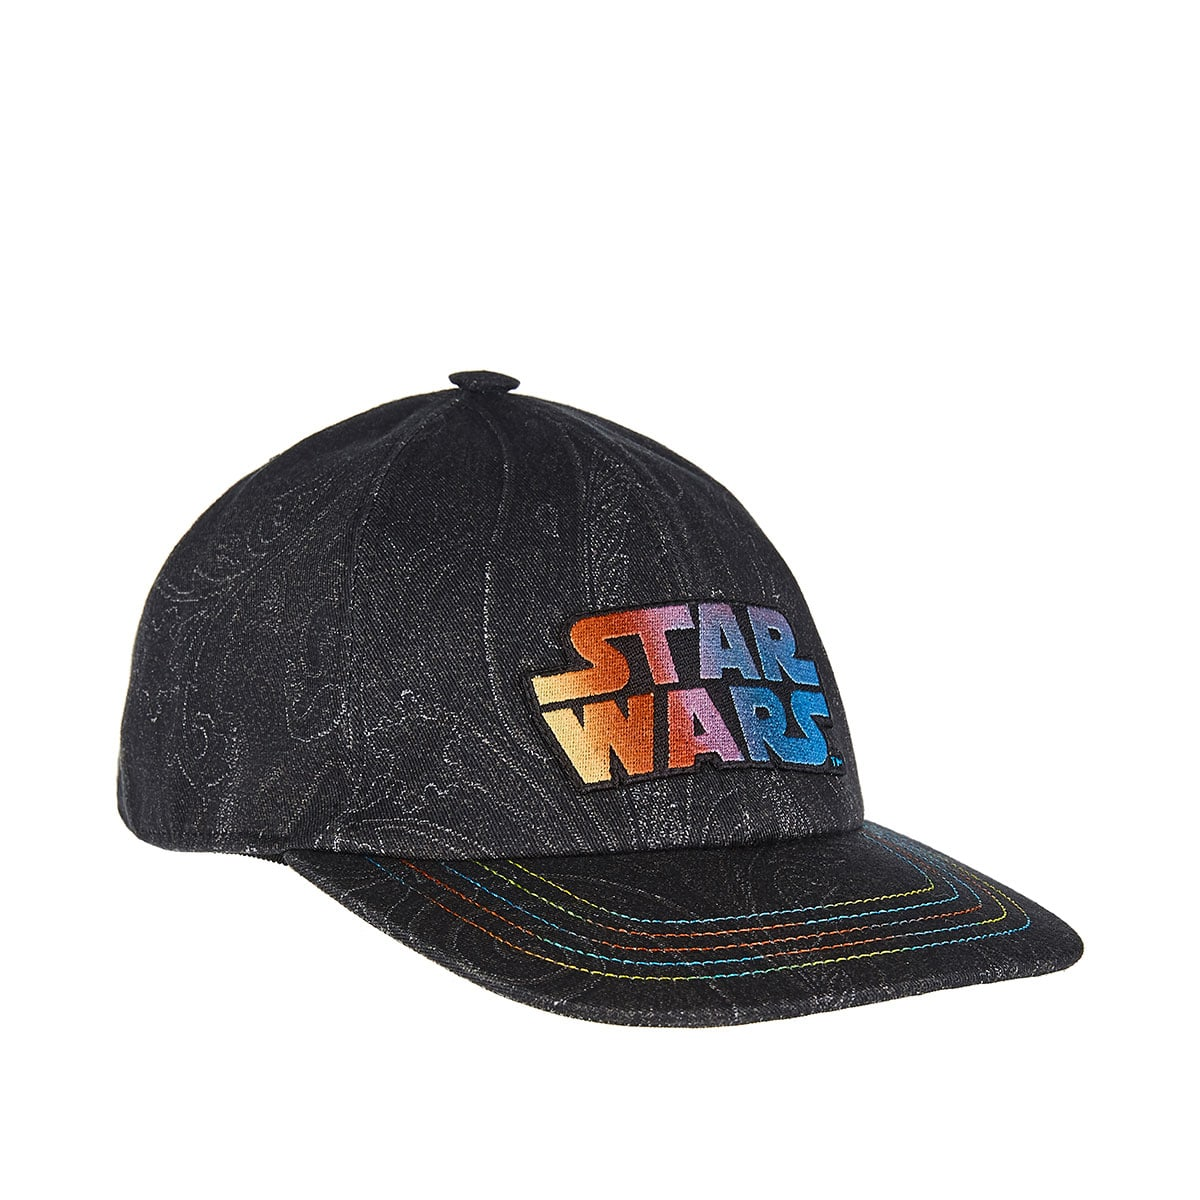 x Star Wars logo baseball cap